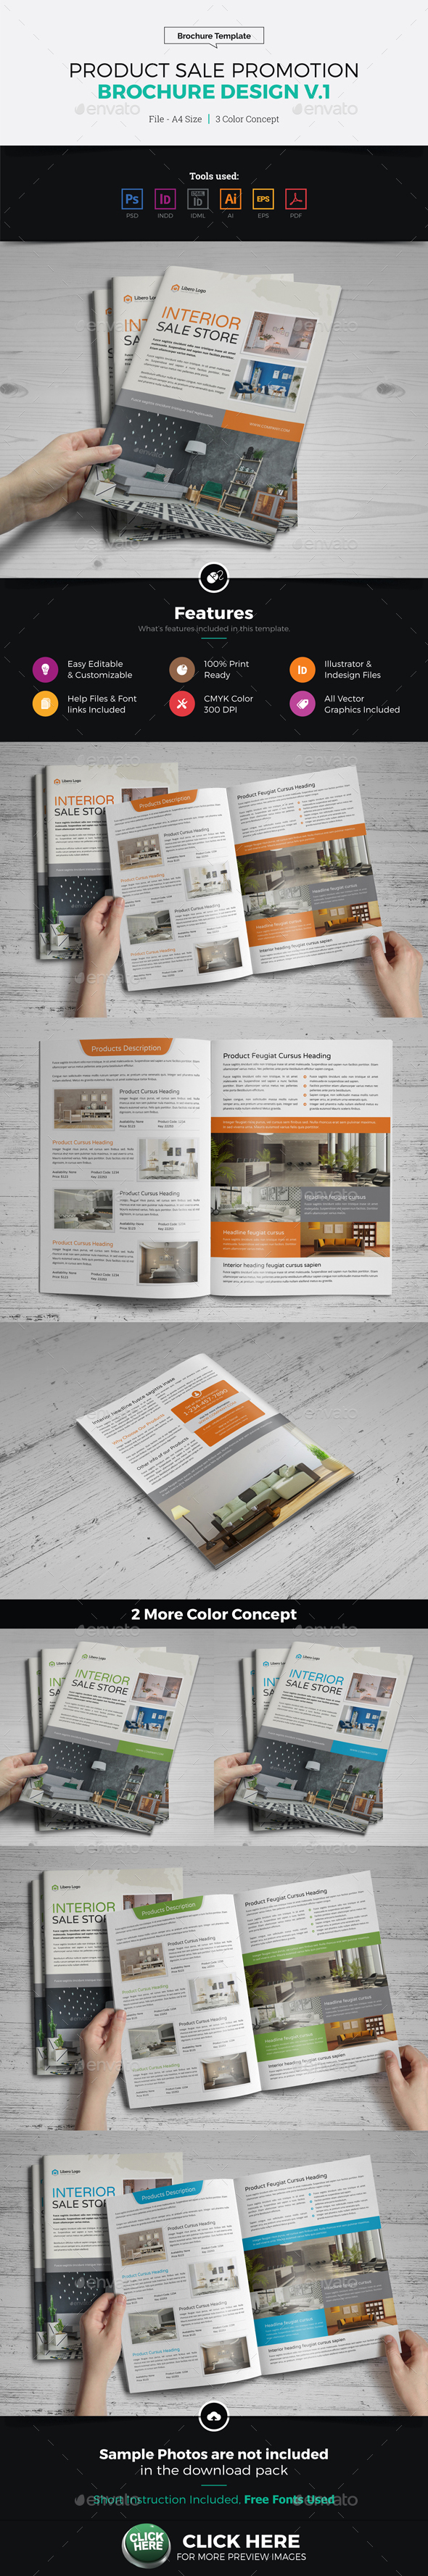 Product Sale Promotion Brochure Catalog v1 - Catalogs Brochures